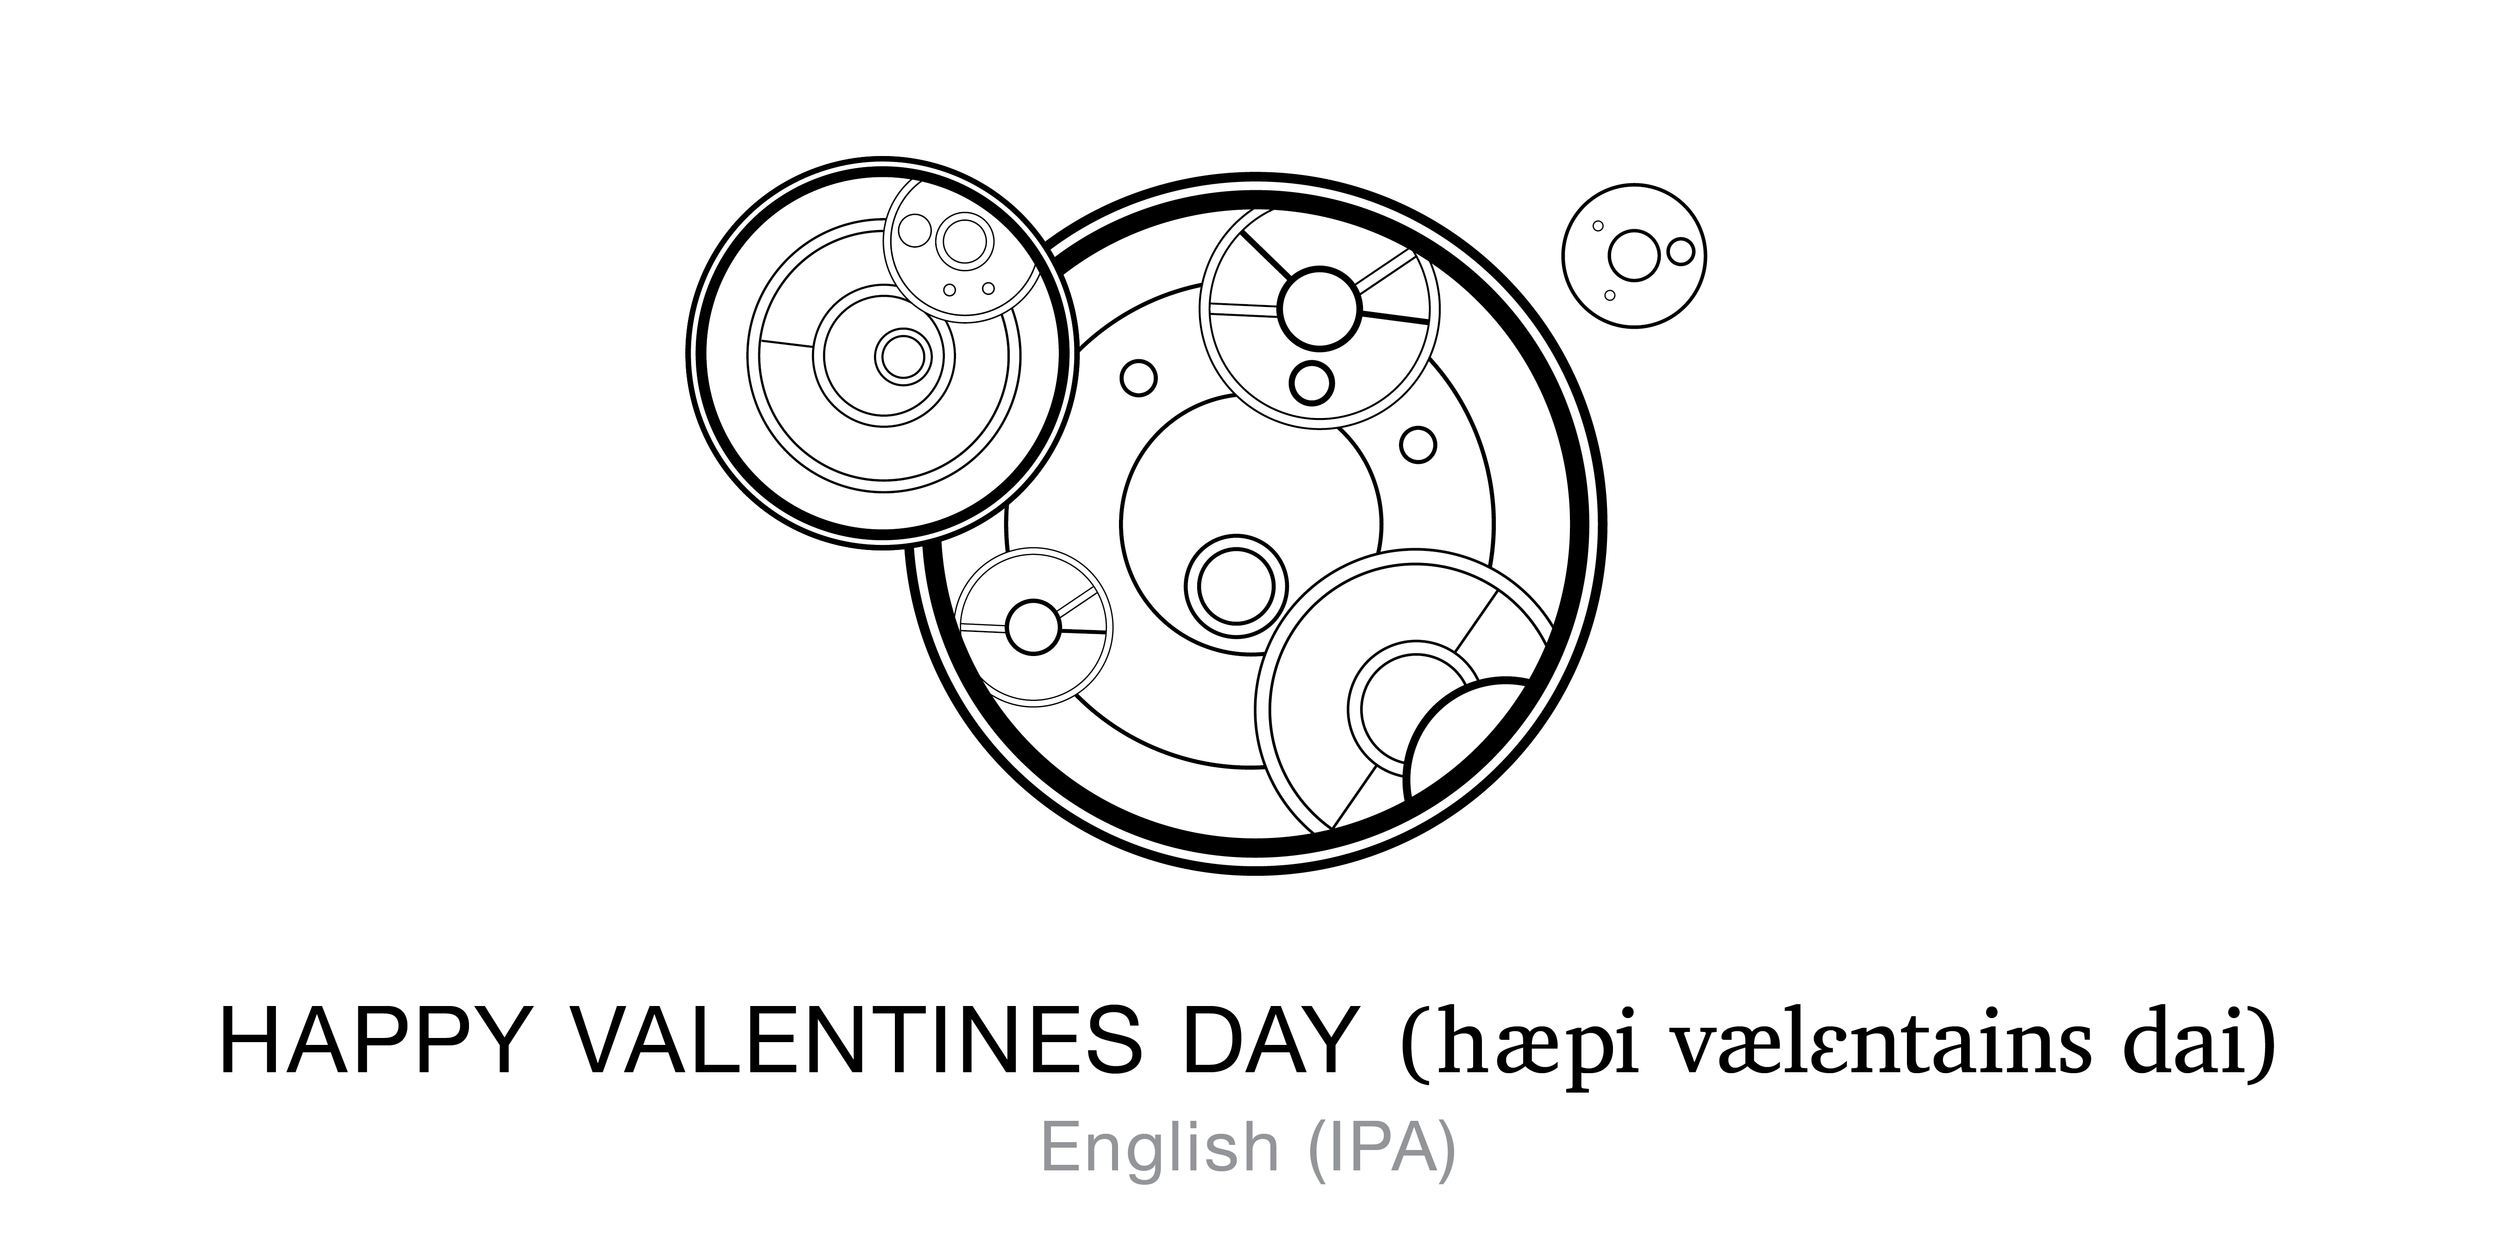 HappyValentinesDay-02.png